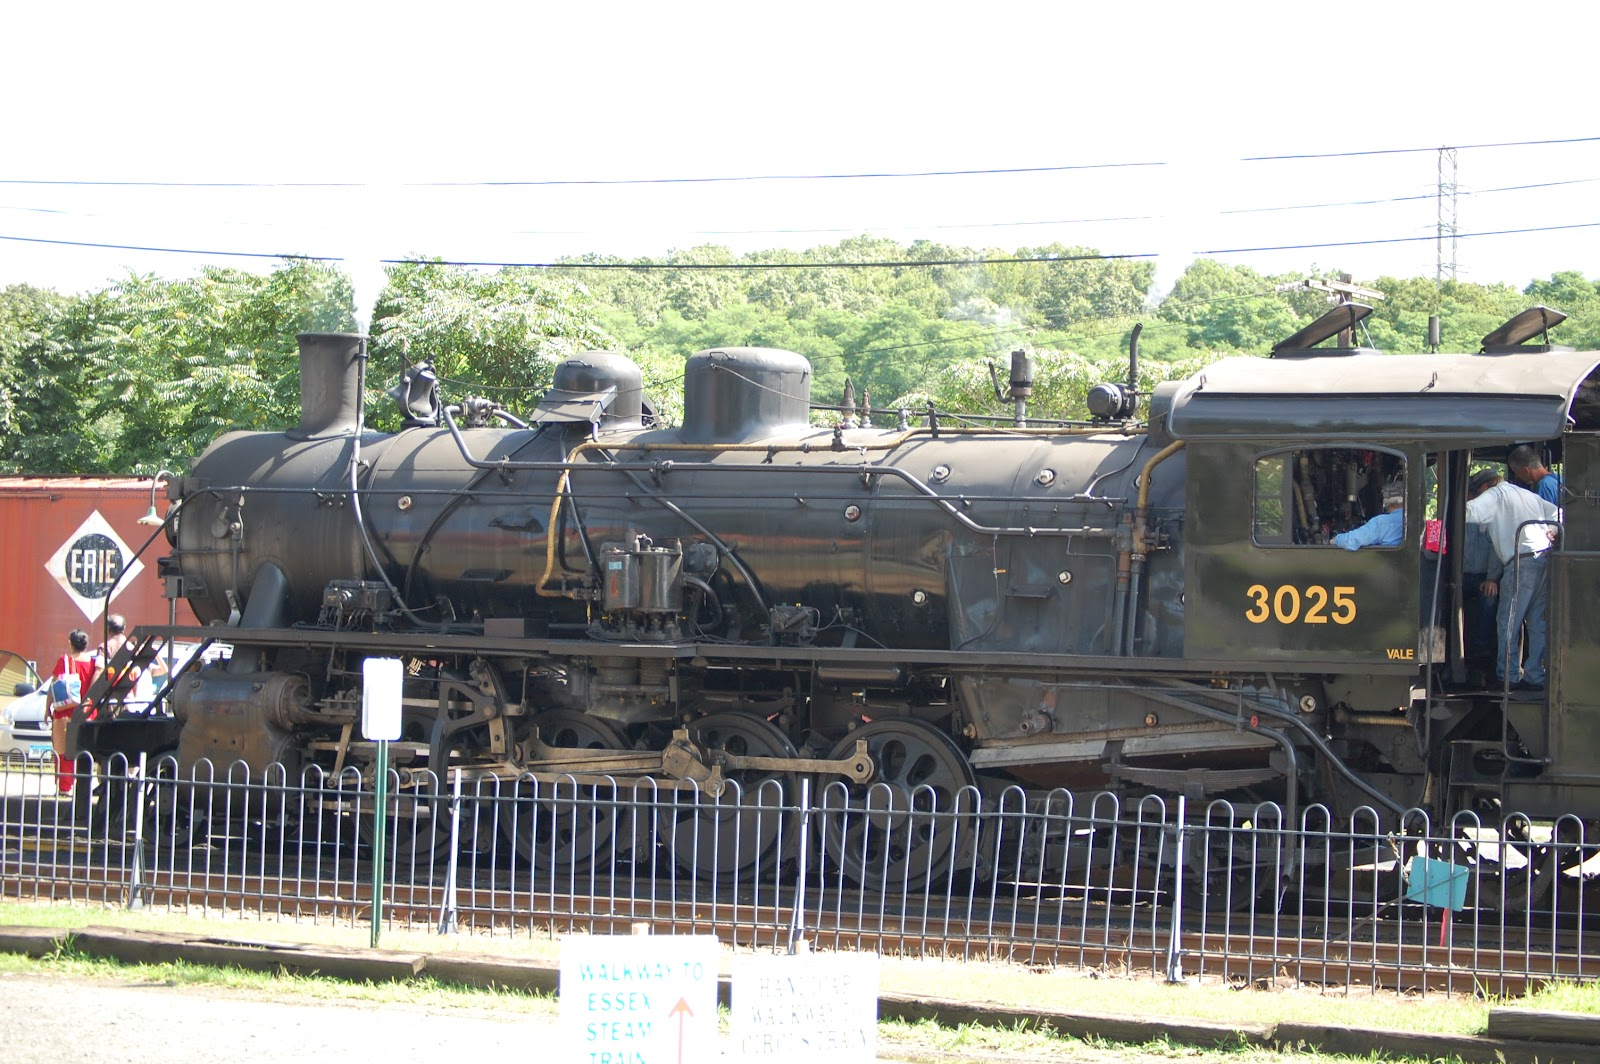 Essex steam train and riverboat images 17